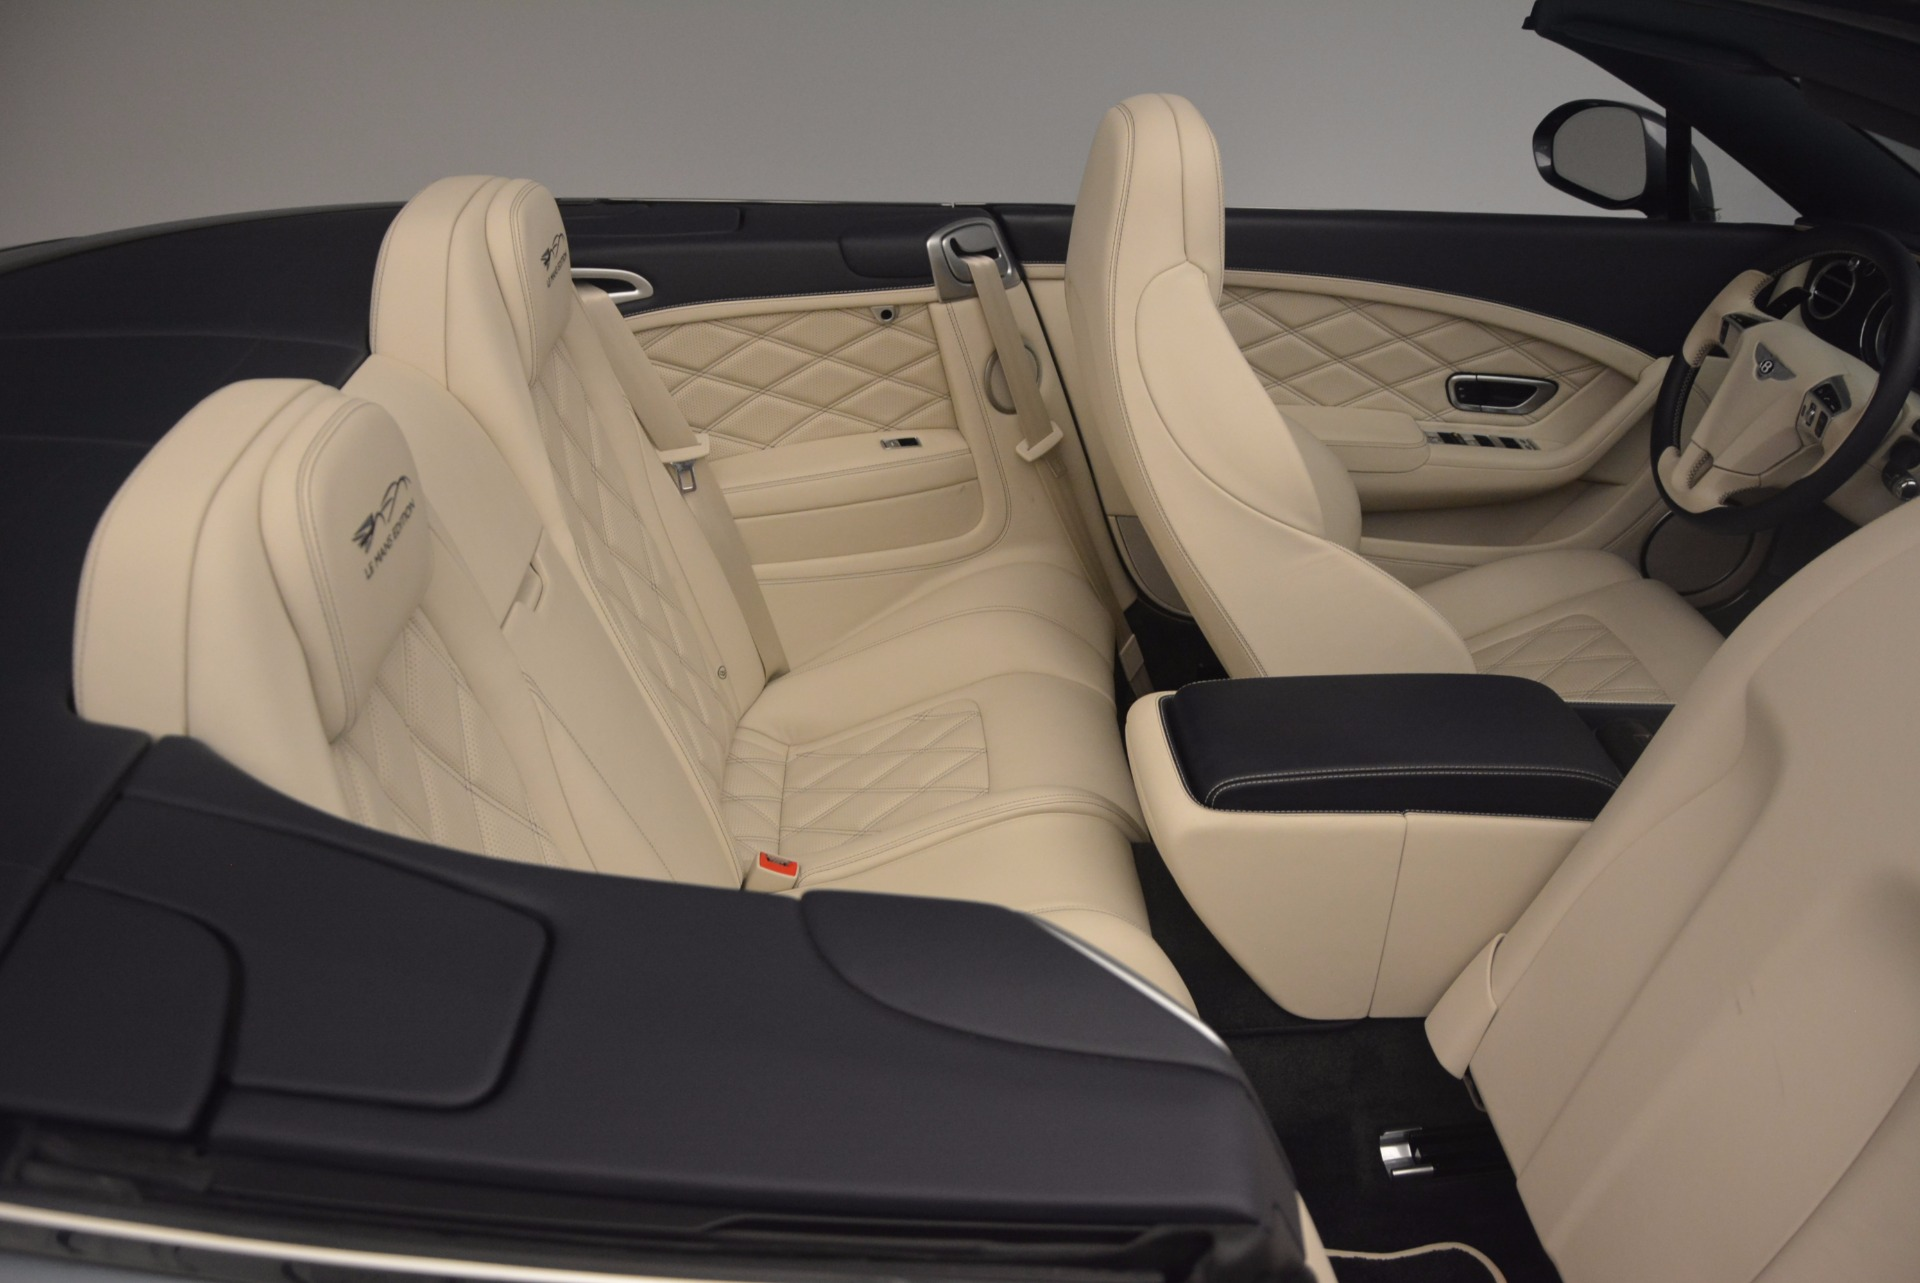 Used 2013 Bentley Continental GT V8 Le Mans Edition, 1 of 48 For Sale In Greenwich, CT 1288_p52